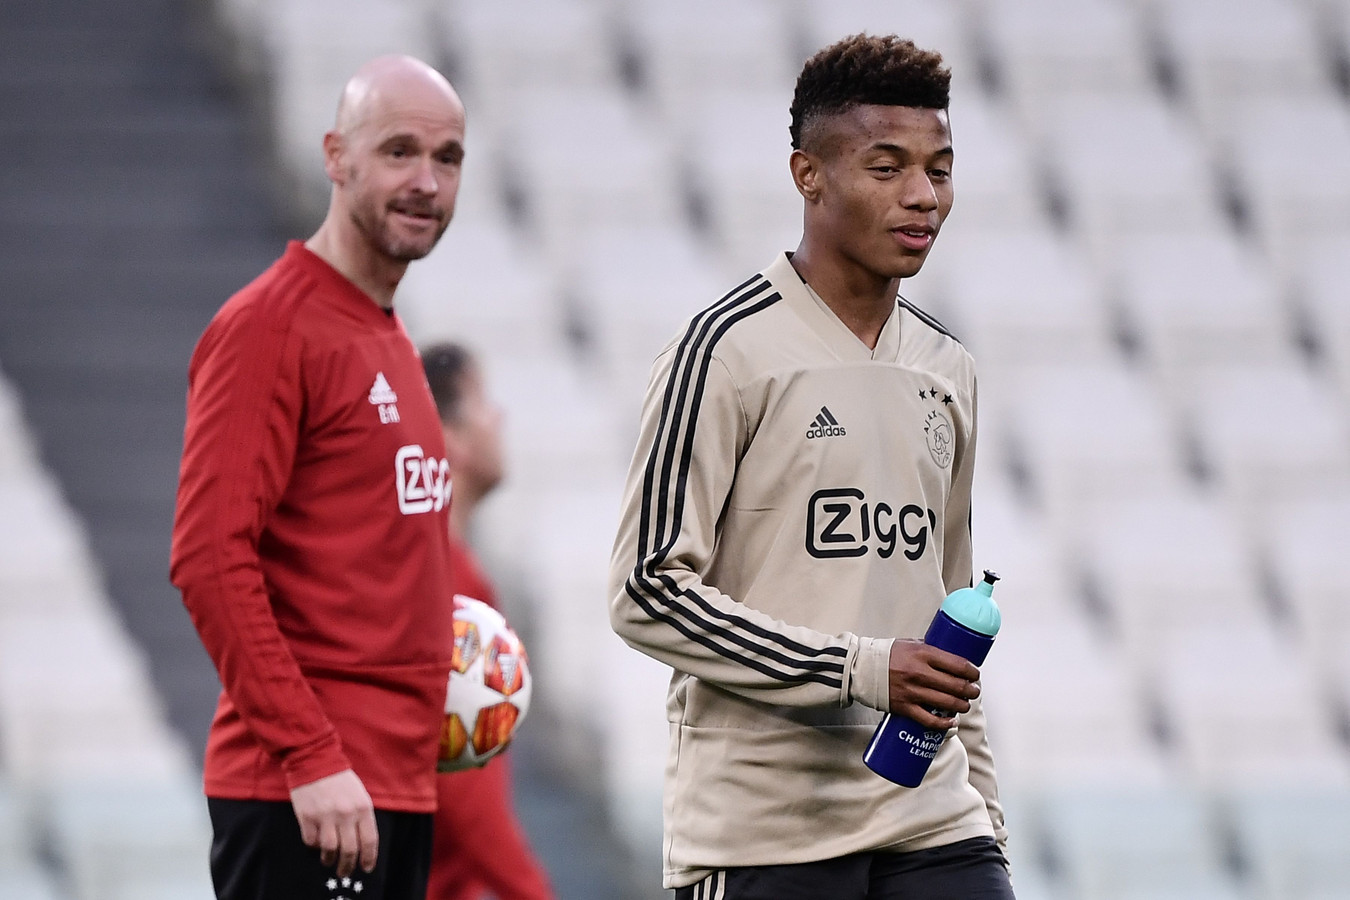 Trainer Erik Ten Hag maandag op de training met David Neres.